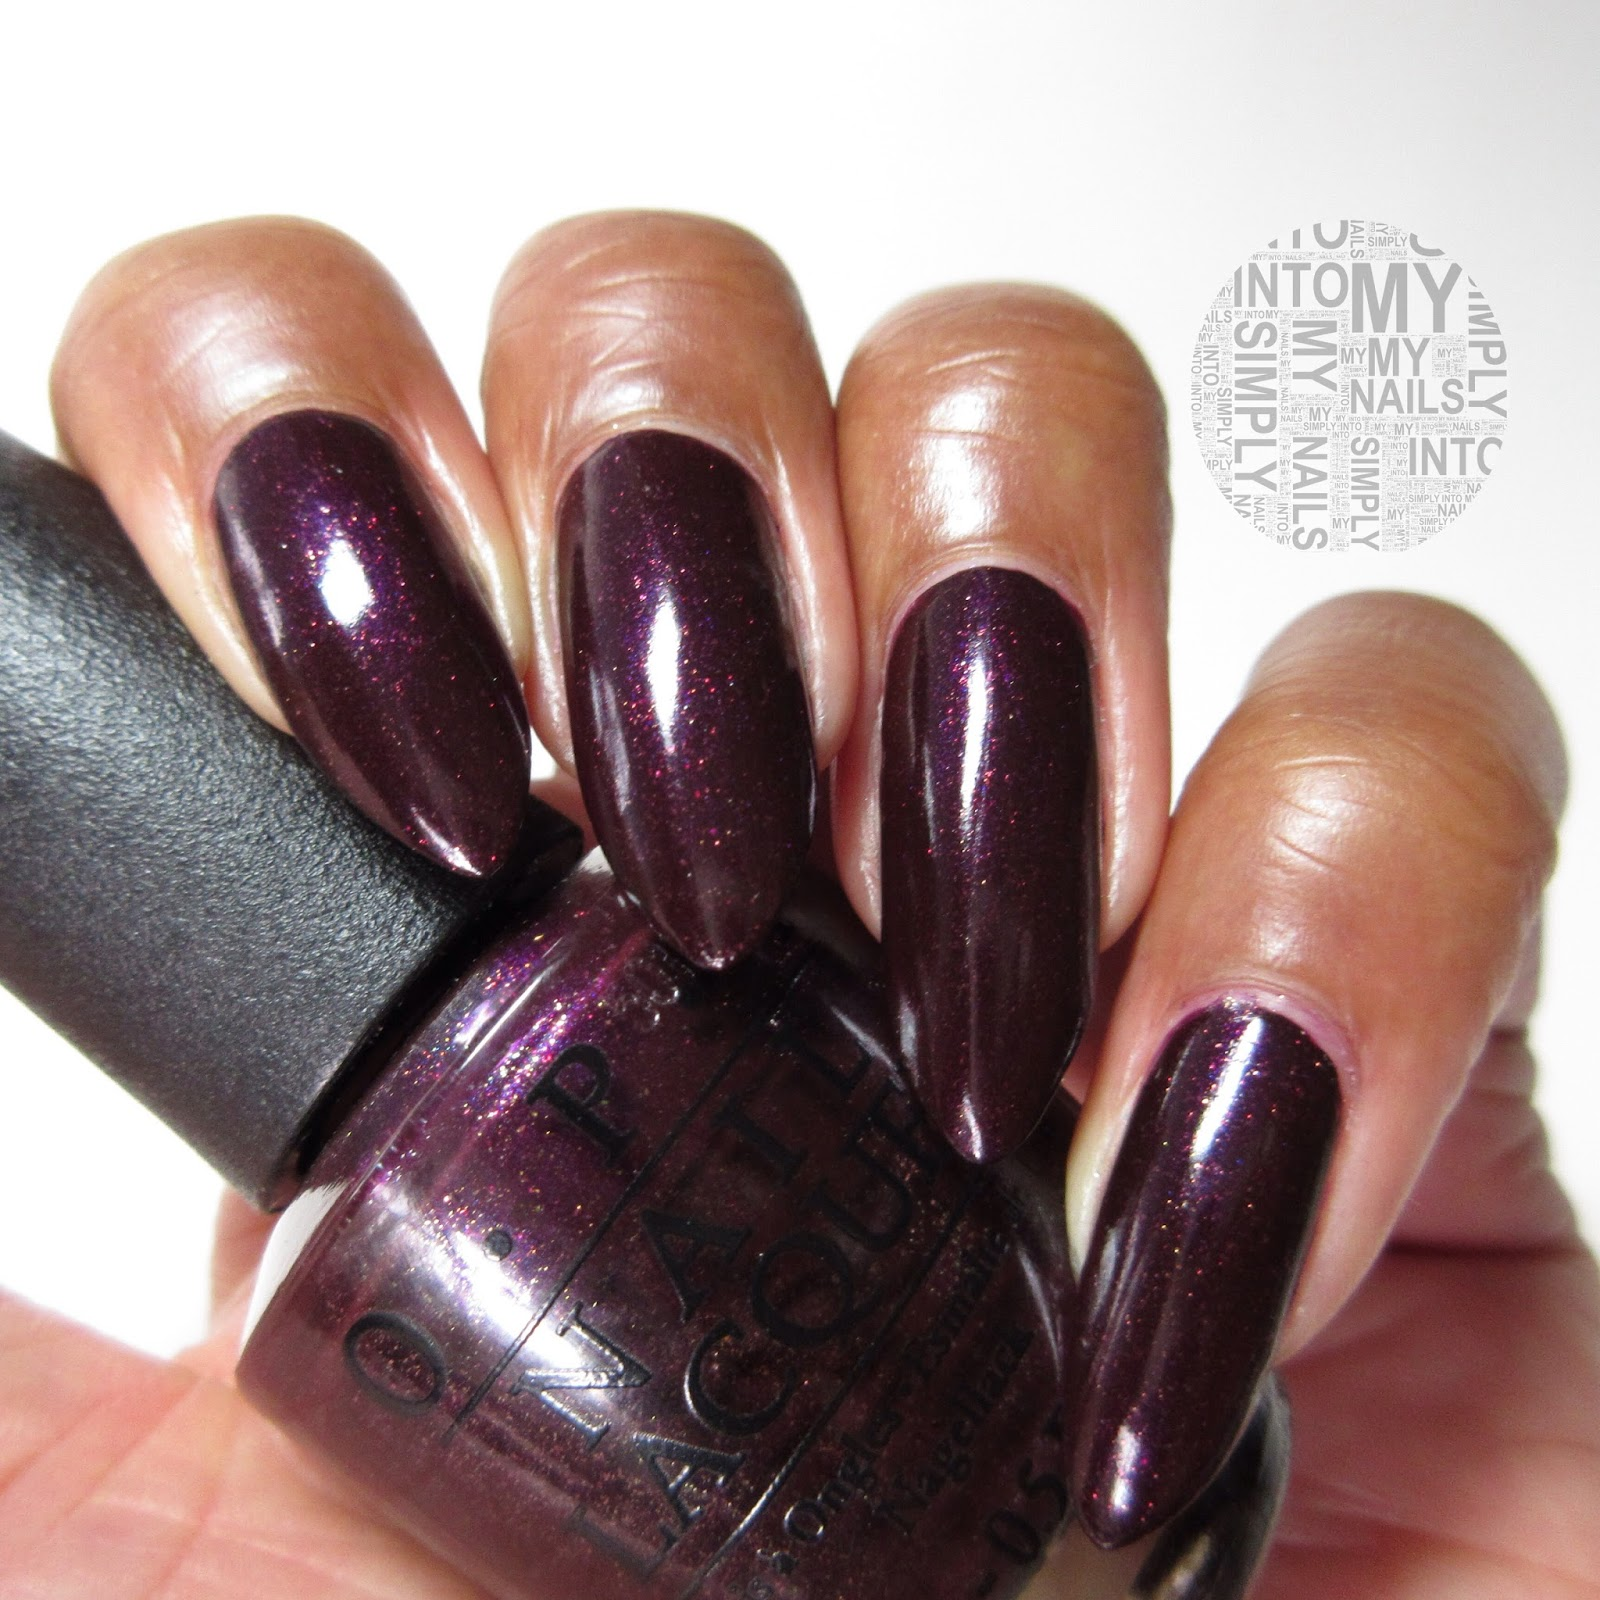 Mini Manicures Opi Stir Fried Eggplant